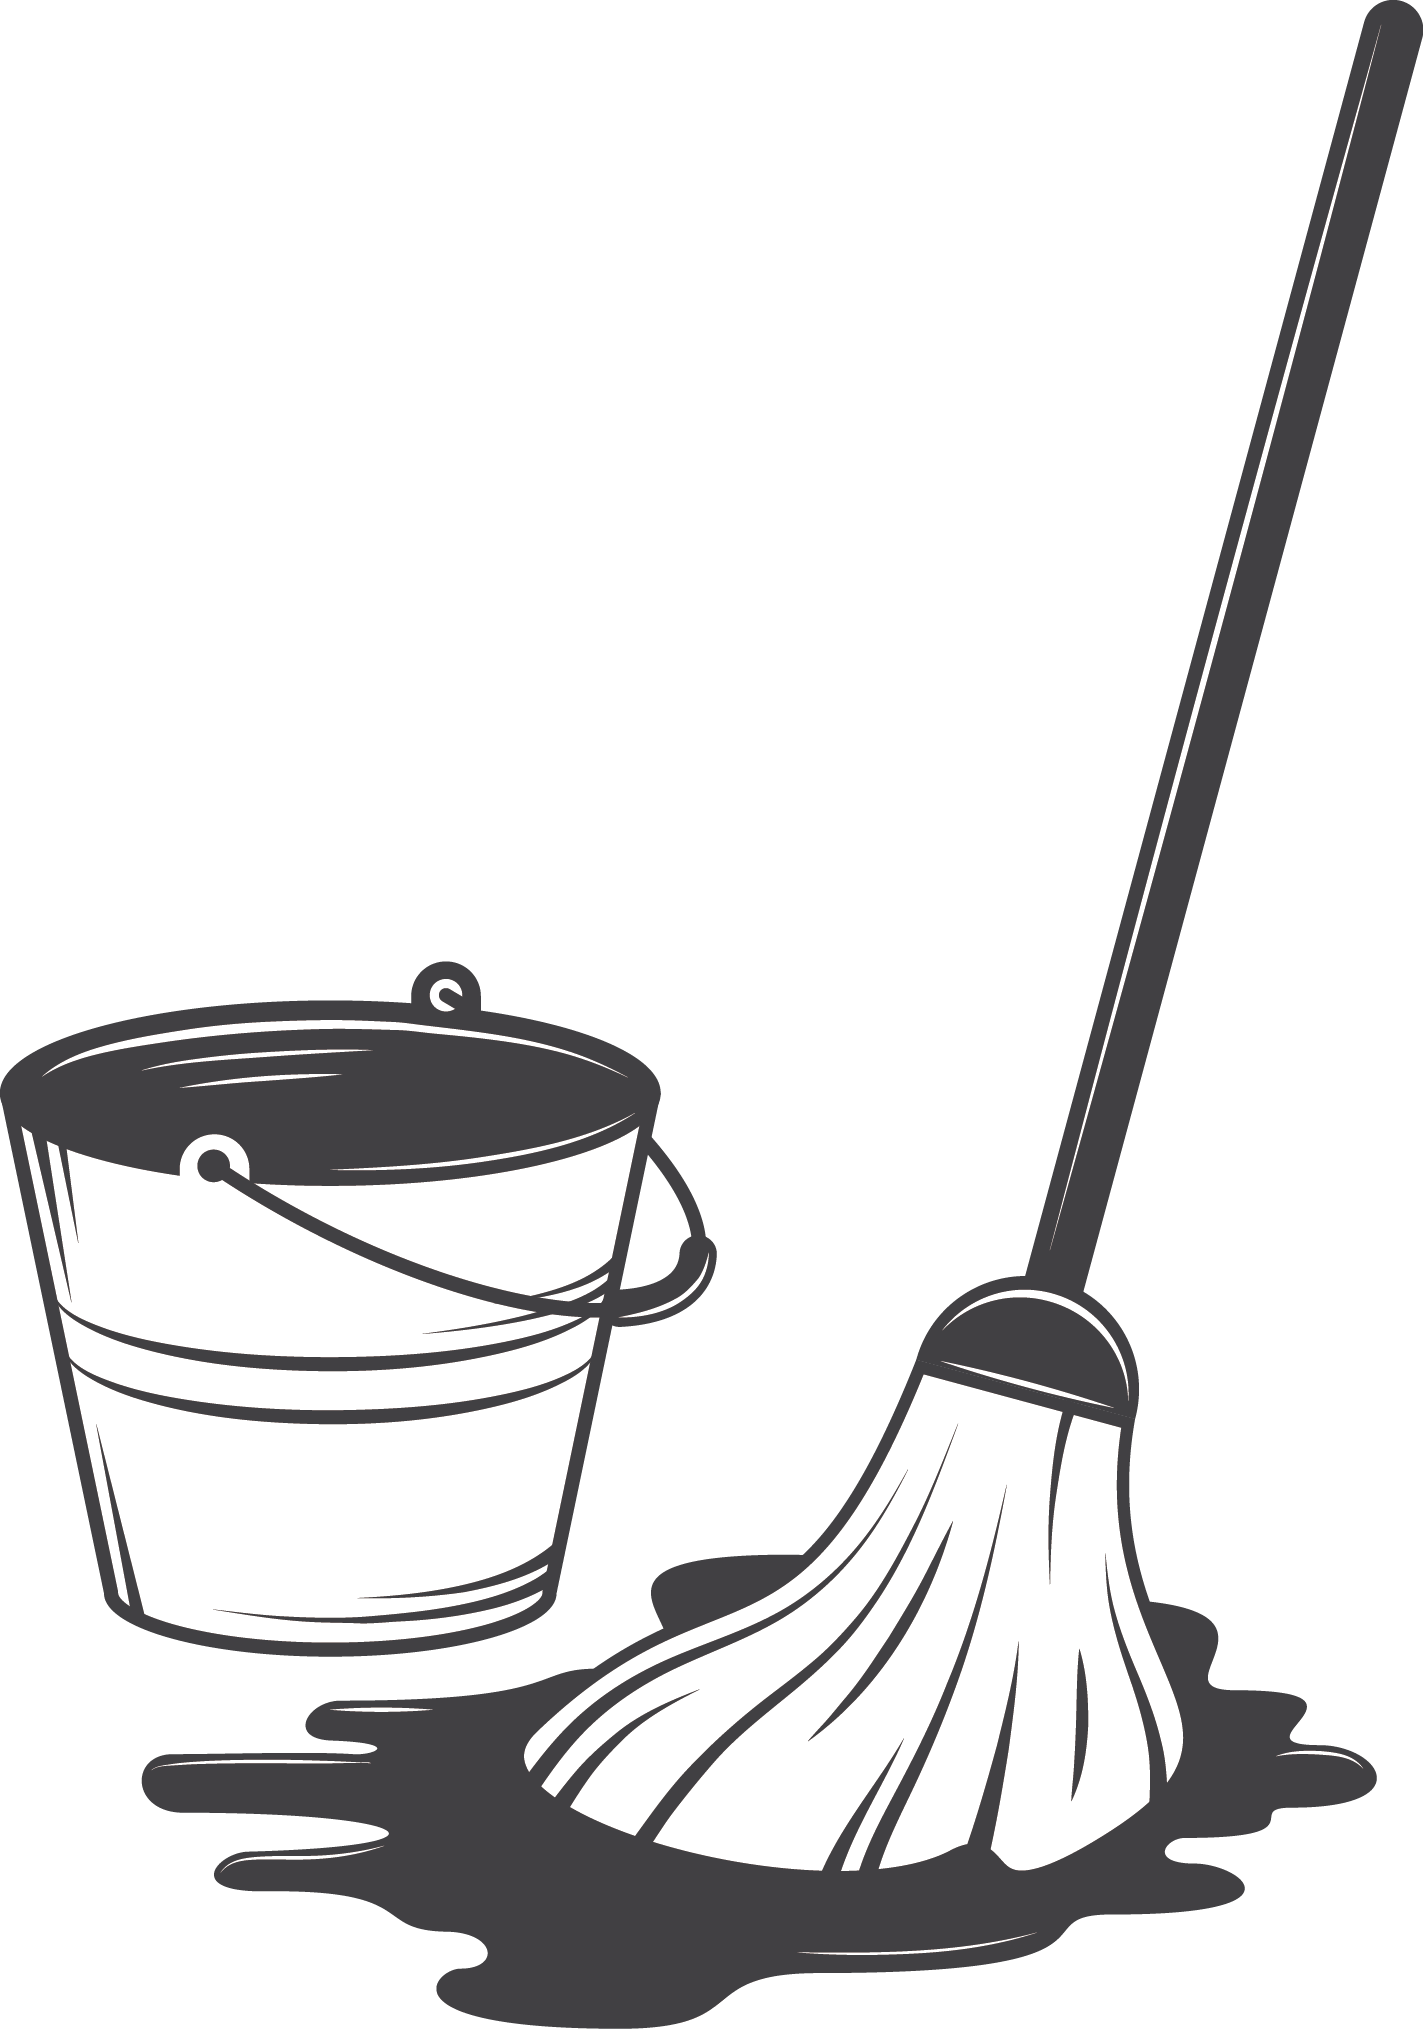 Cleaning Cliparts, Stock Vector And Royalty Free Cleaning